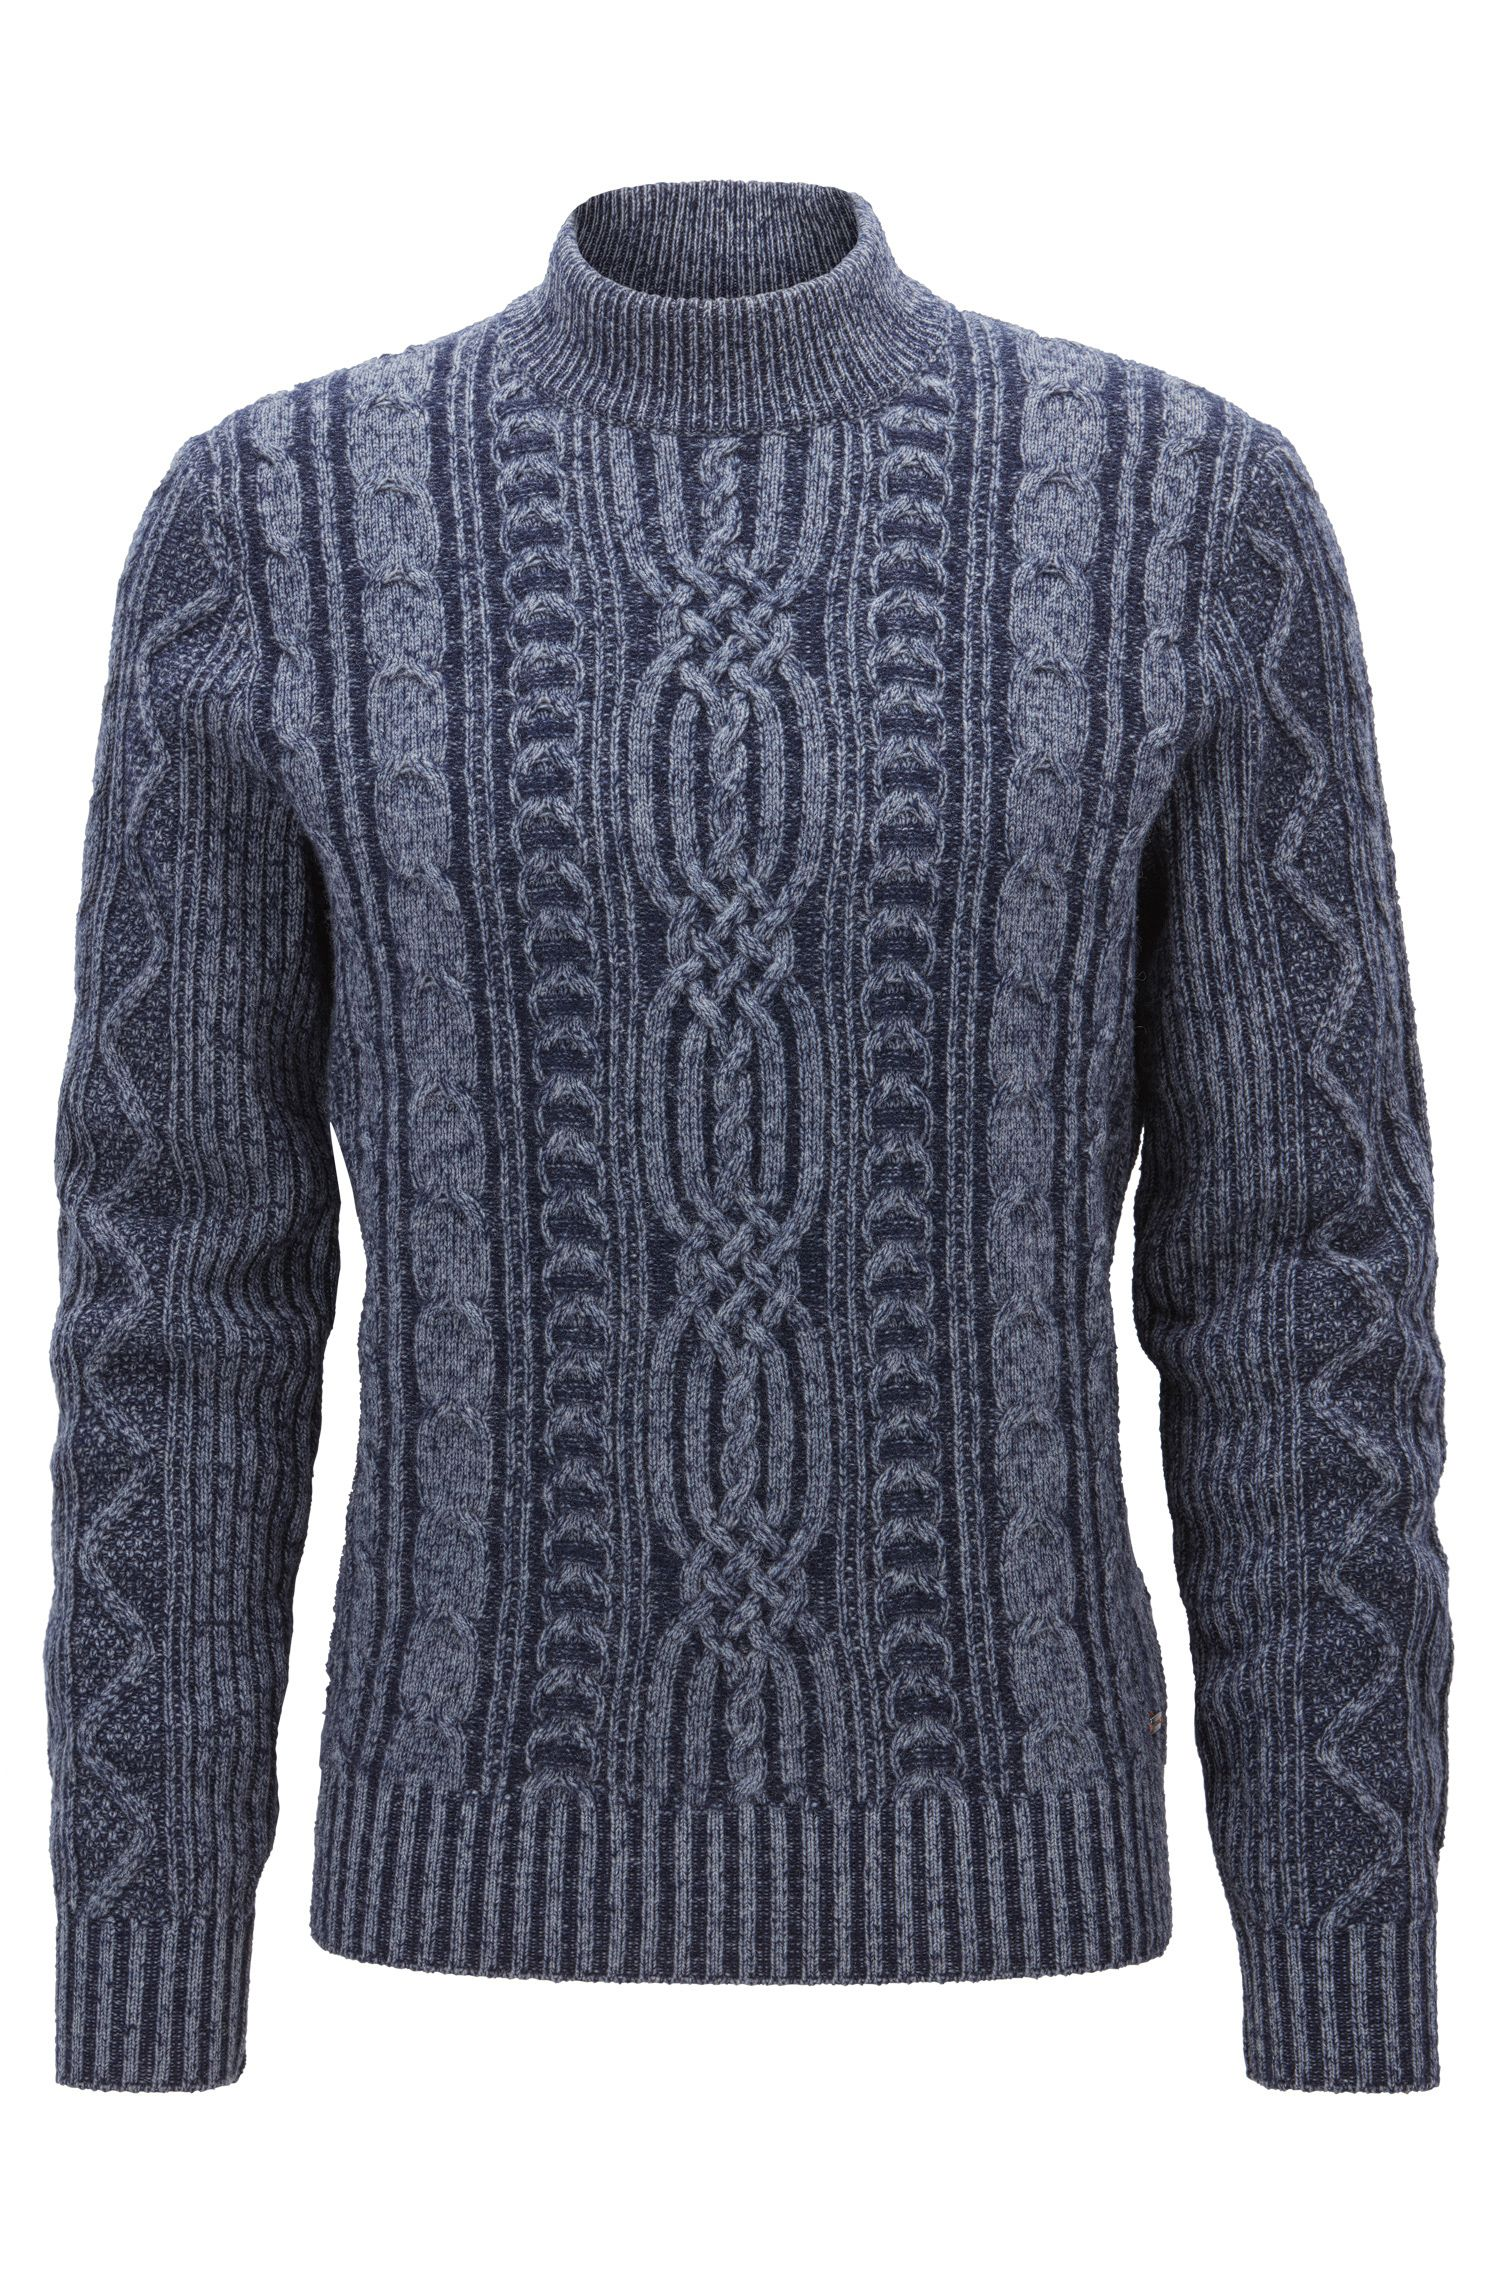 Mock turtle-neck sweater in a wool blend